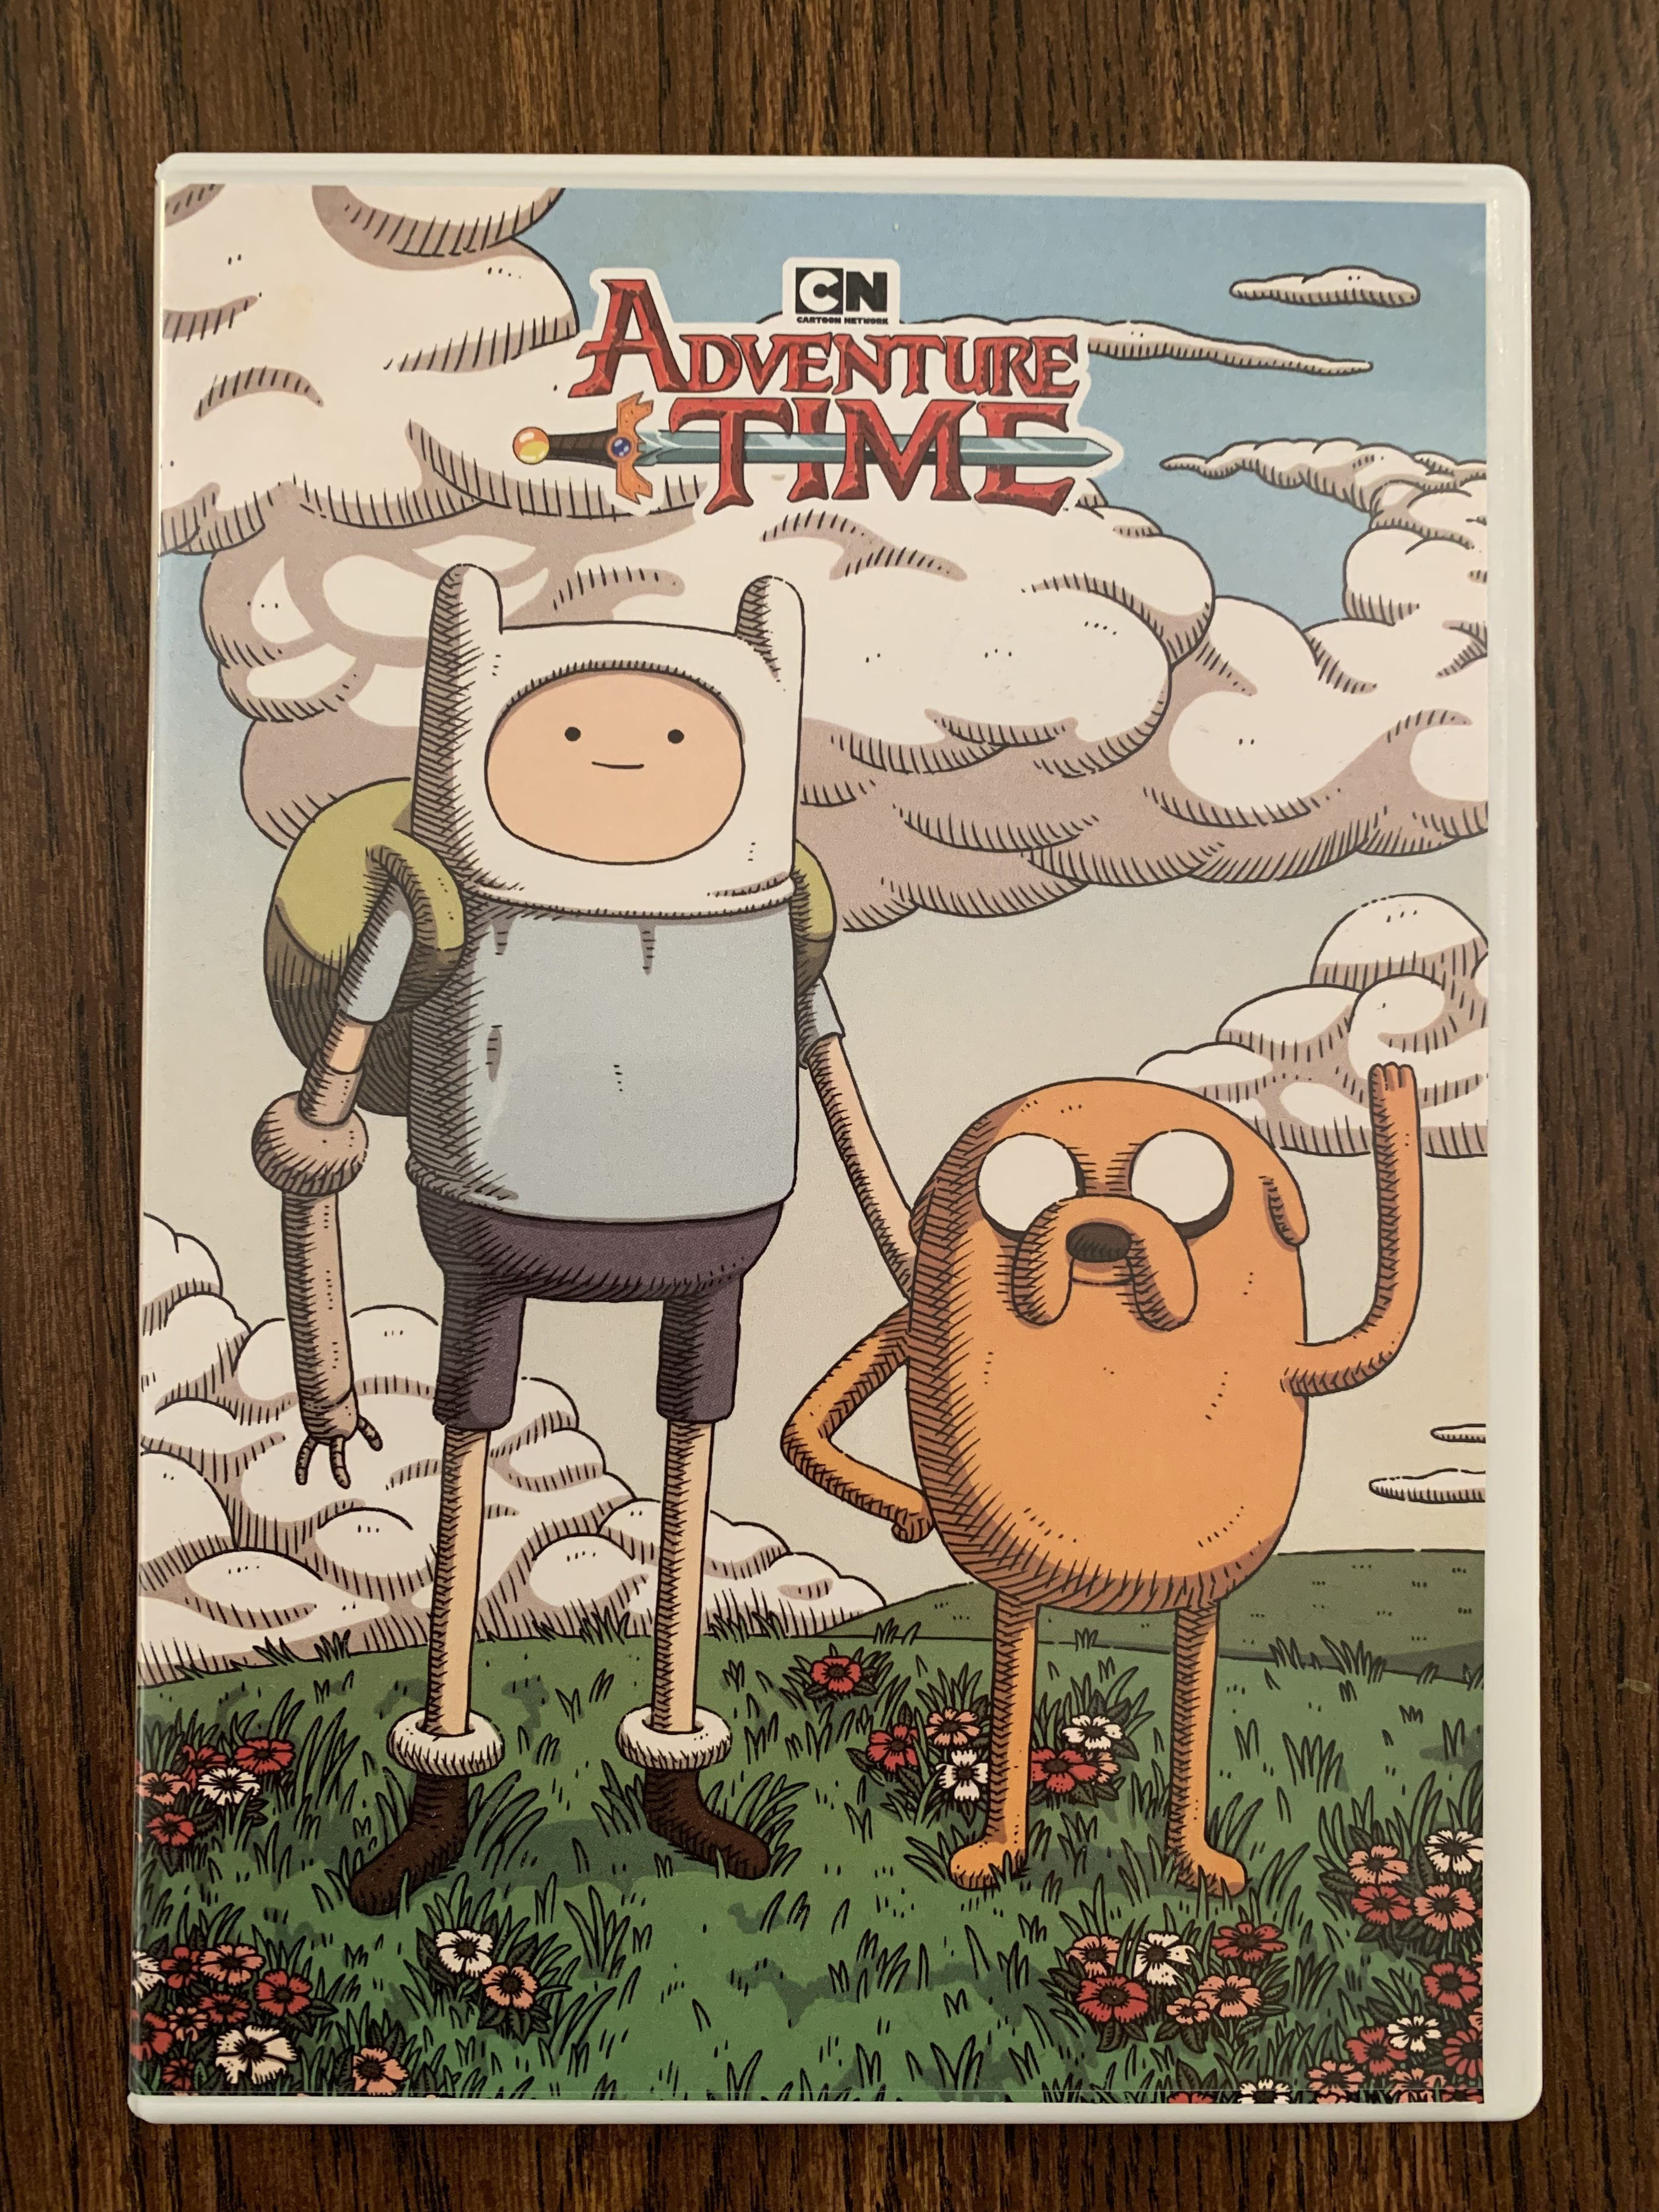 Adventure Time: The Complete Collection! Own It Now, And Buy